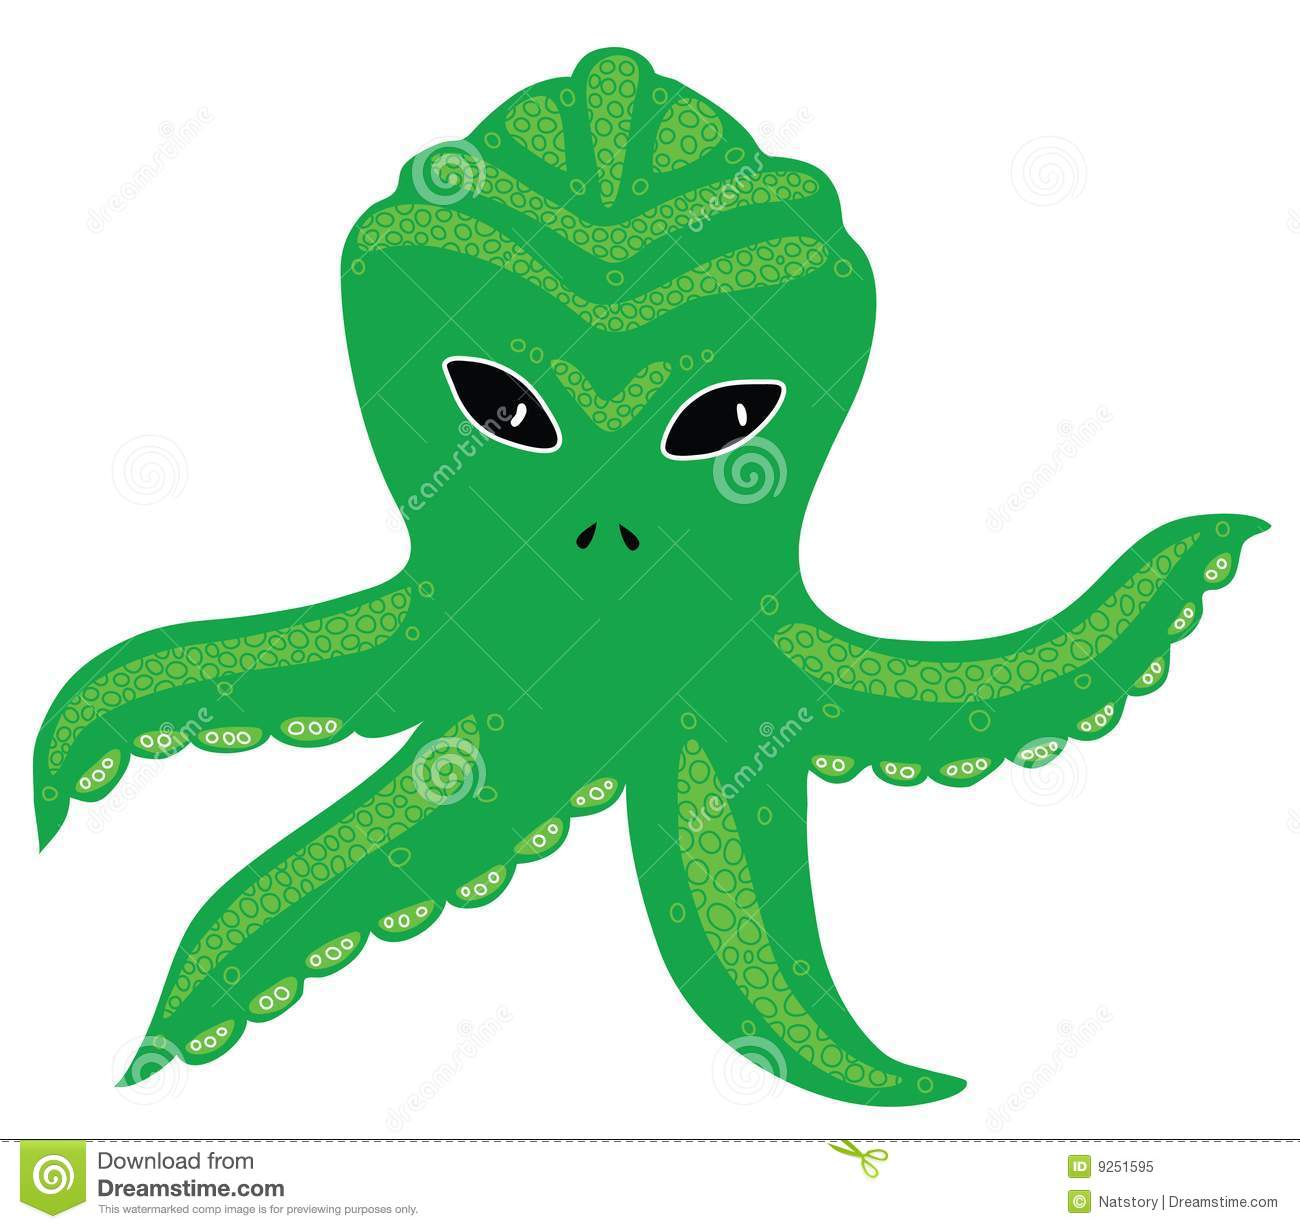 Cthulhu clipart #10, Download drawings